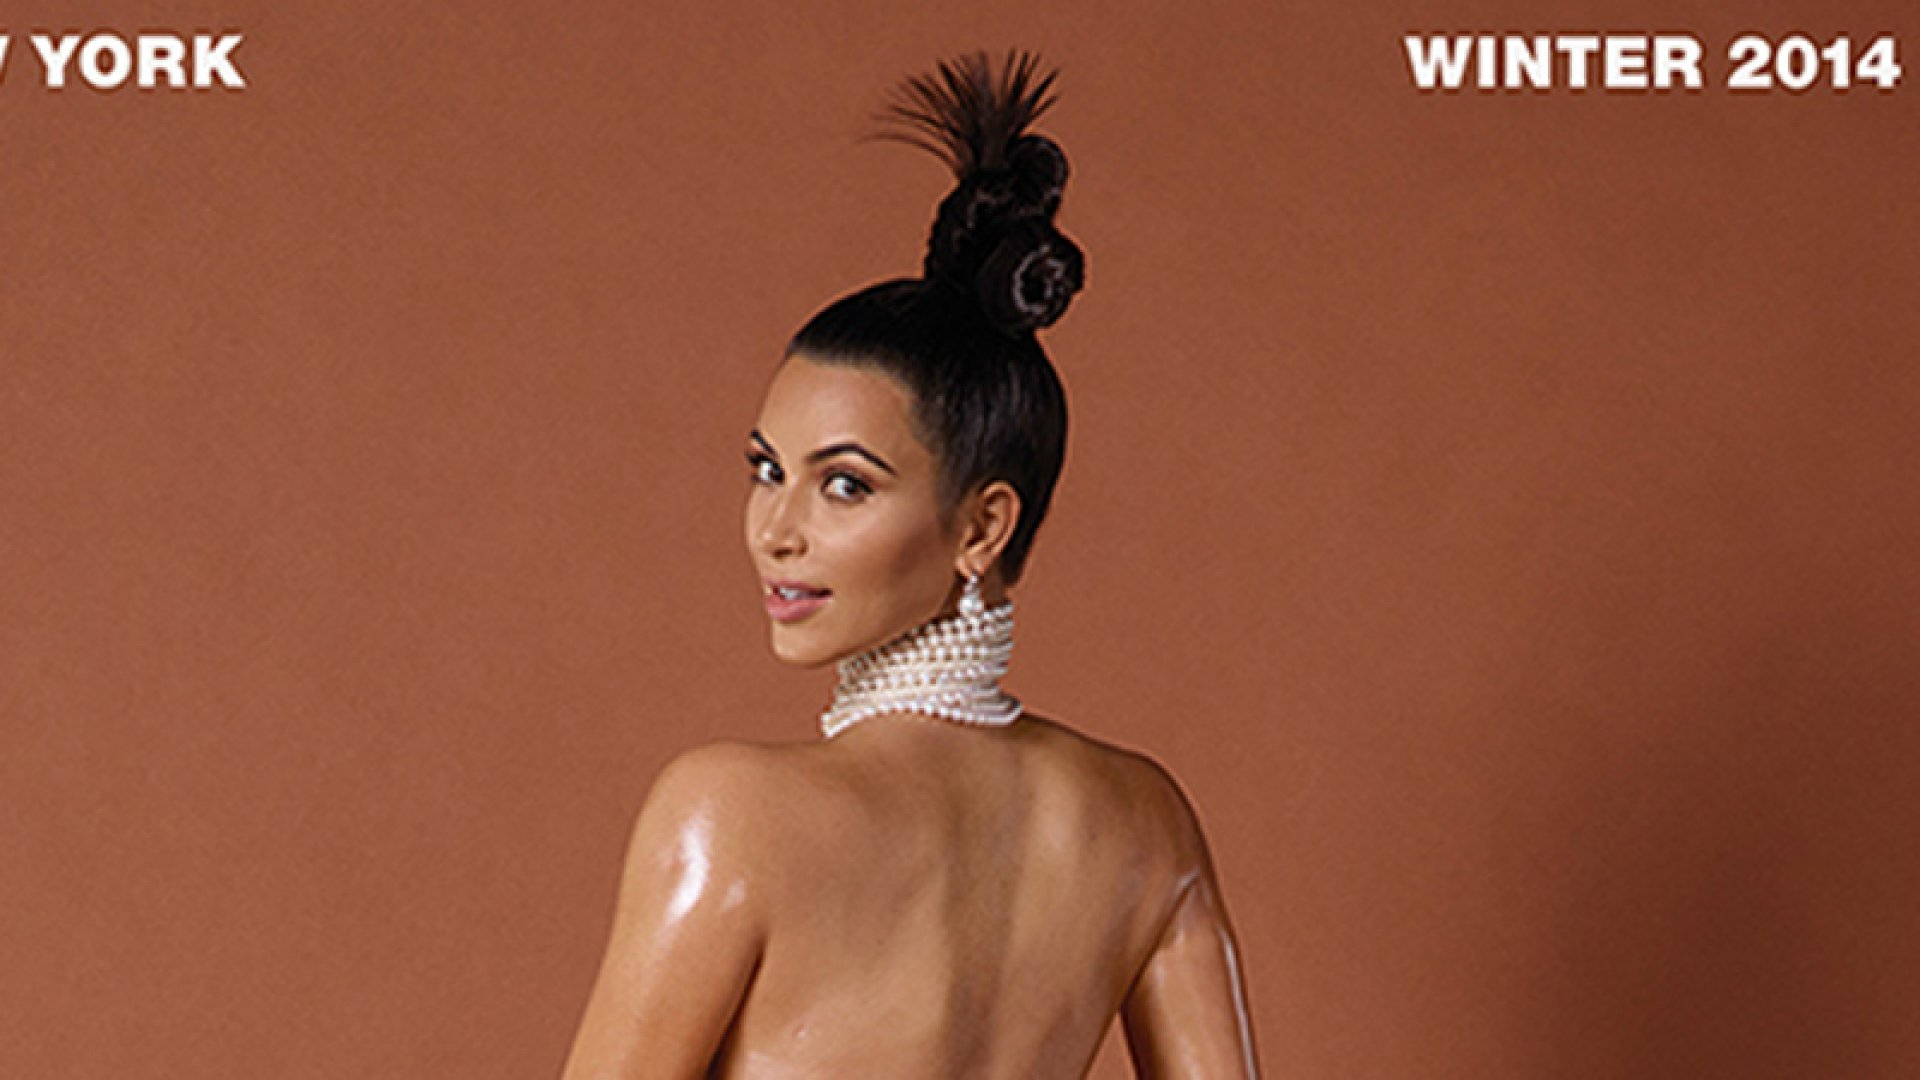 Leading from Behind: 3 Branding Tips From Kim Kardashian's Derriere